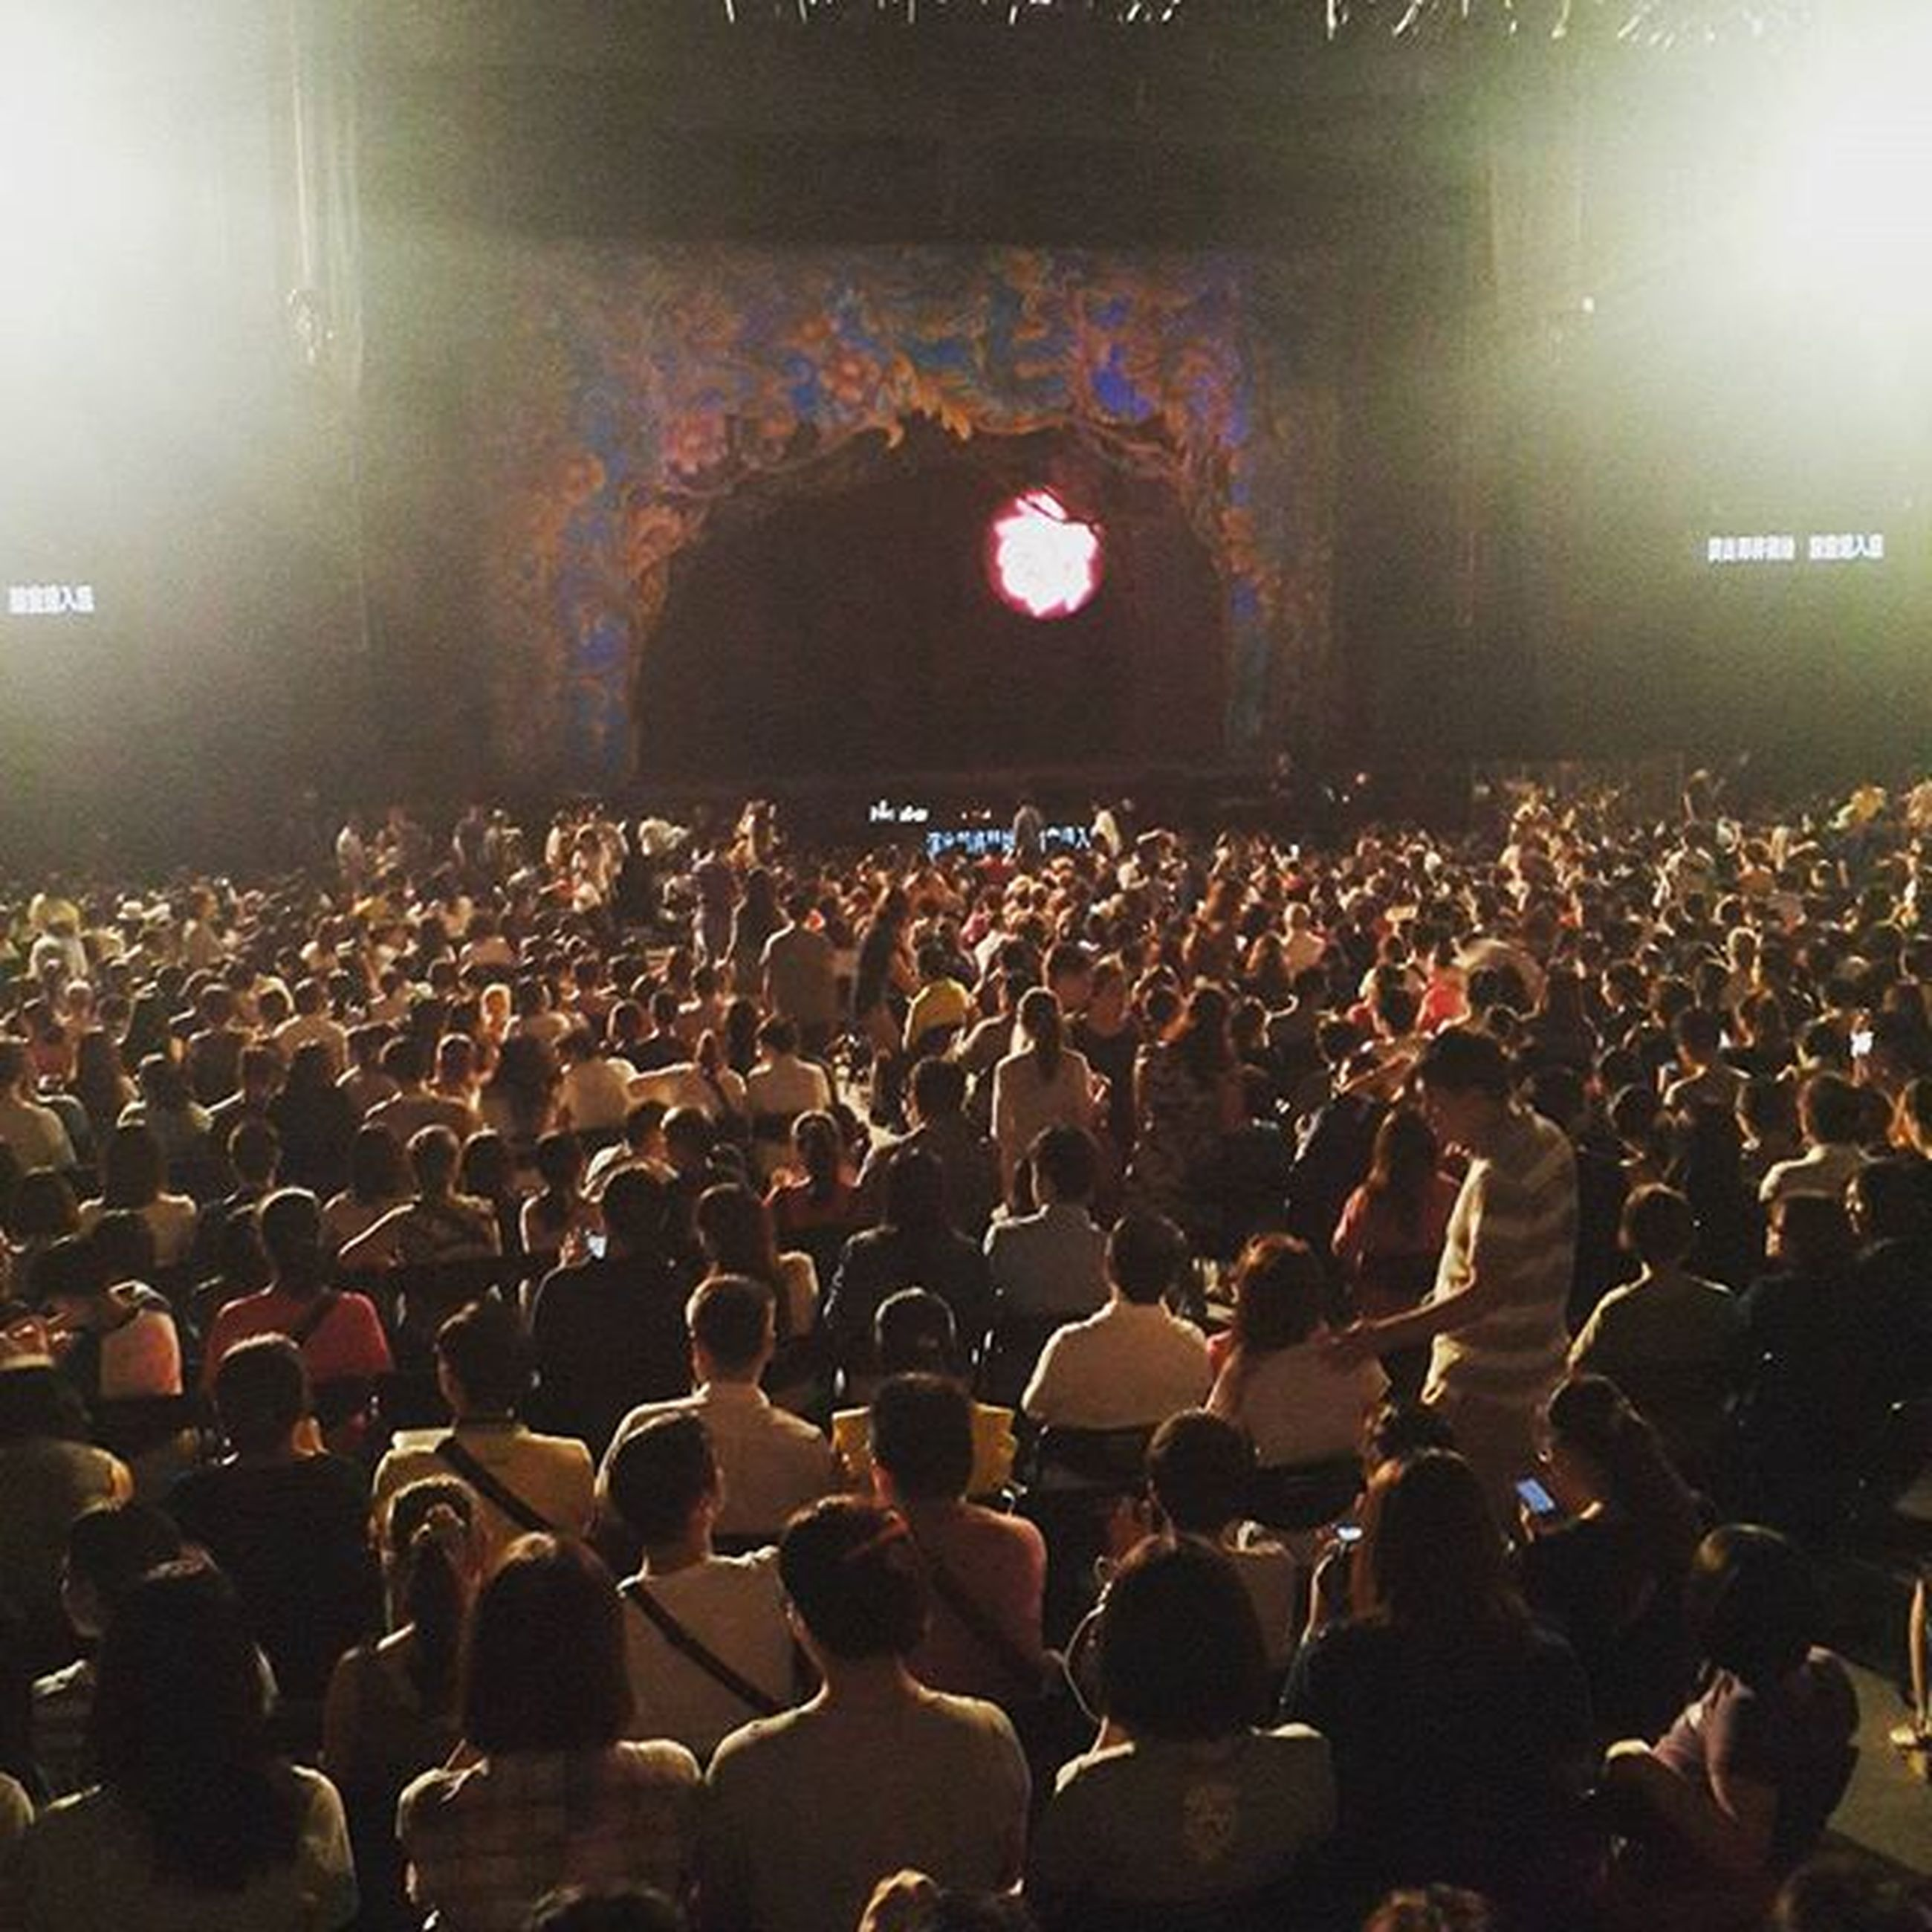 indoors, large group of people, illuminated, crowd, lifestyles, men, person, night, lighting equipment, leisure activity, arts culture and entertainment, light - natural phenomenon, music, nightlife, togetherness, stage - performance space, performance, event